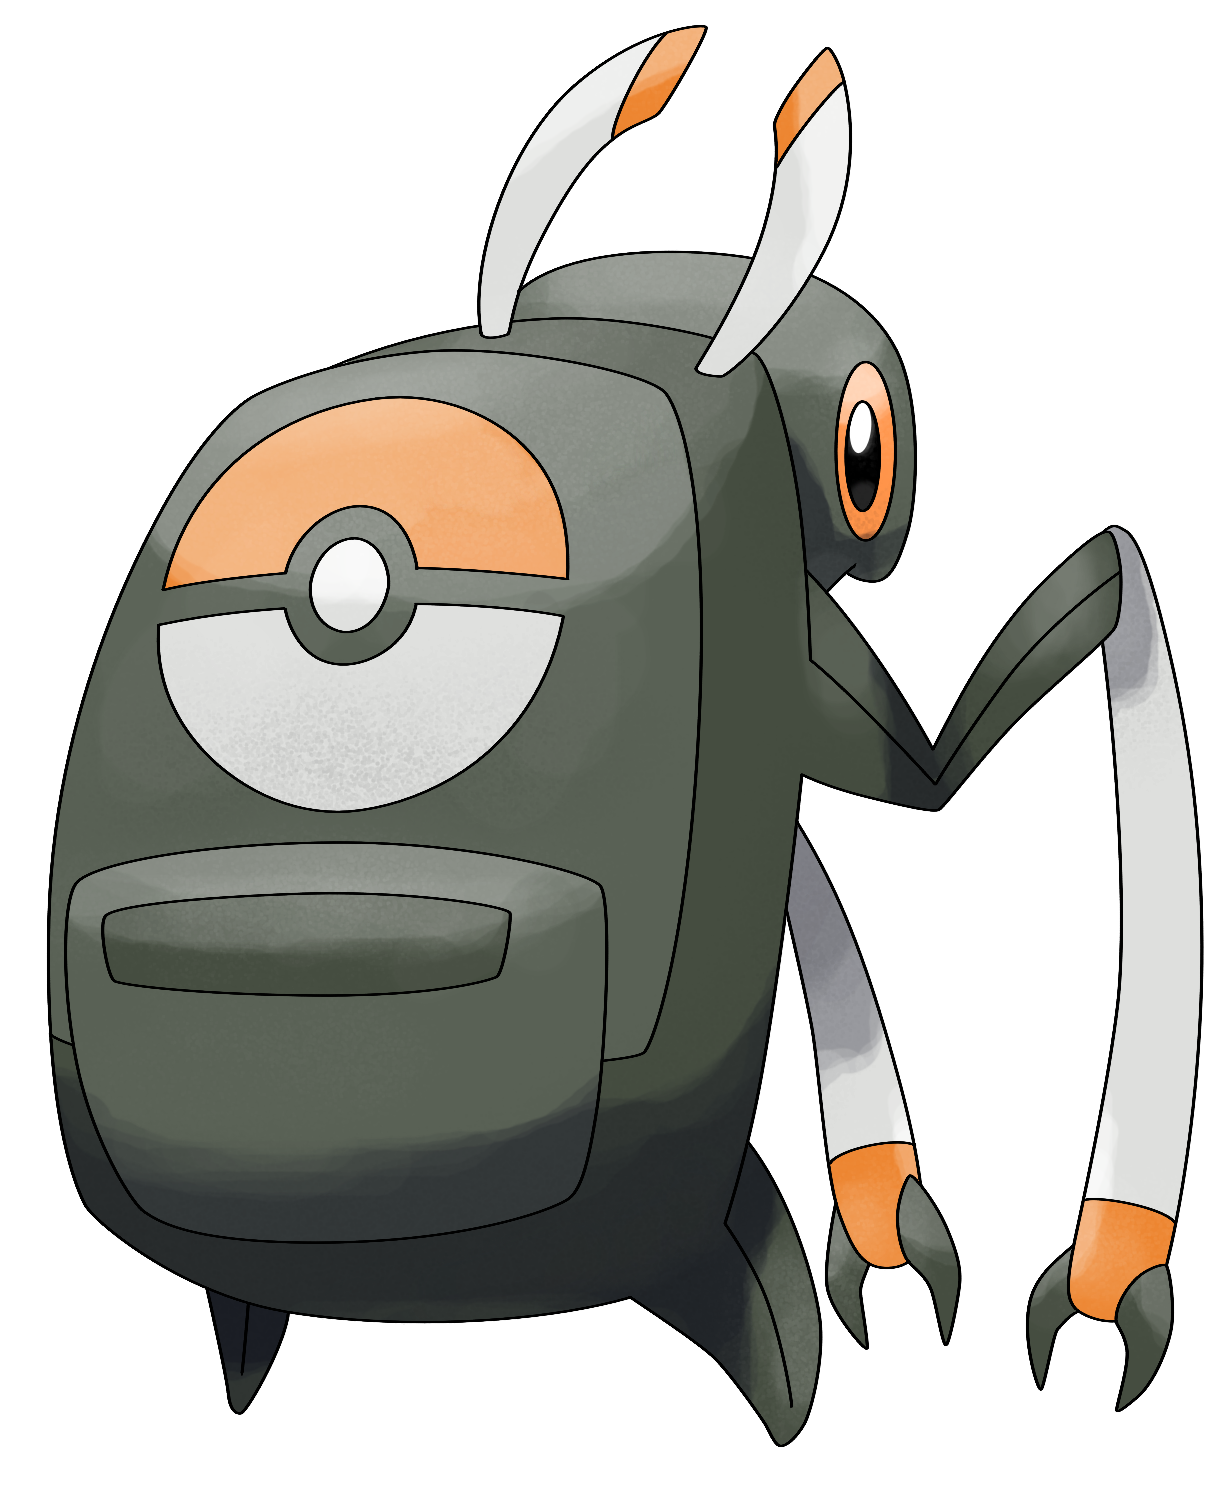 Glitch clipart beatle Smiley Explore Fakemon Smiley 152